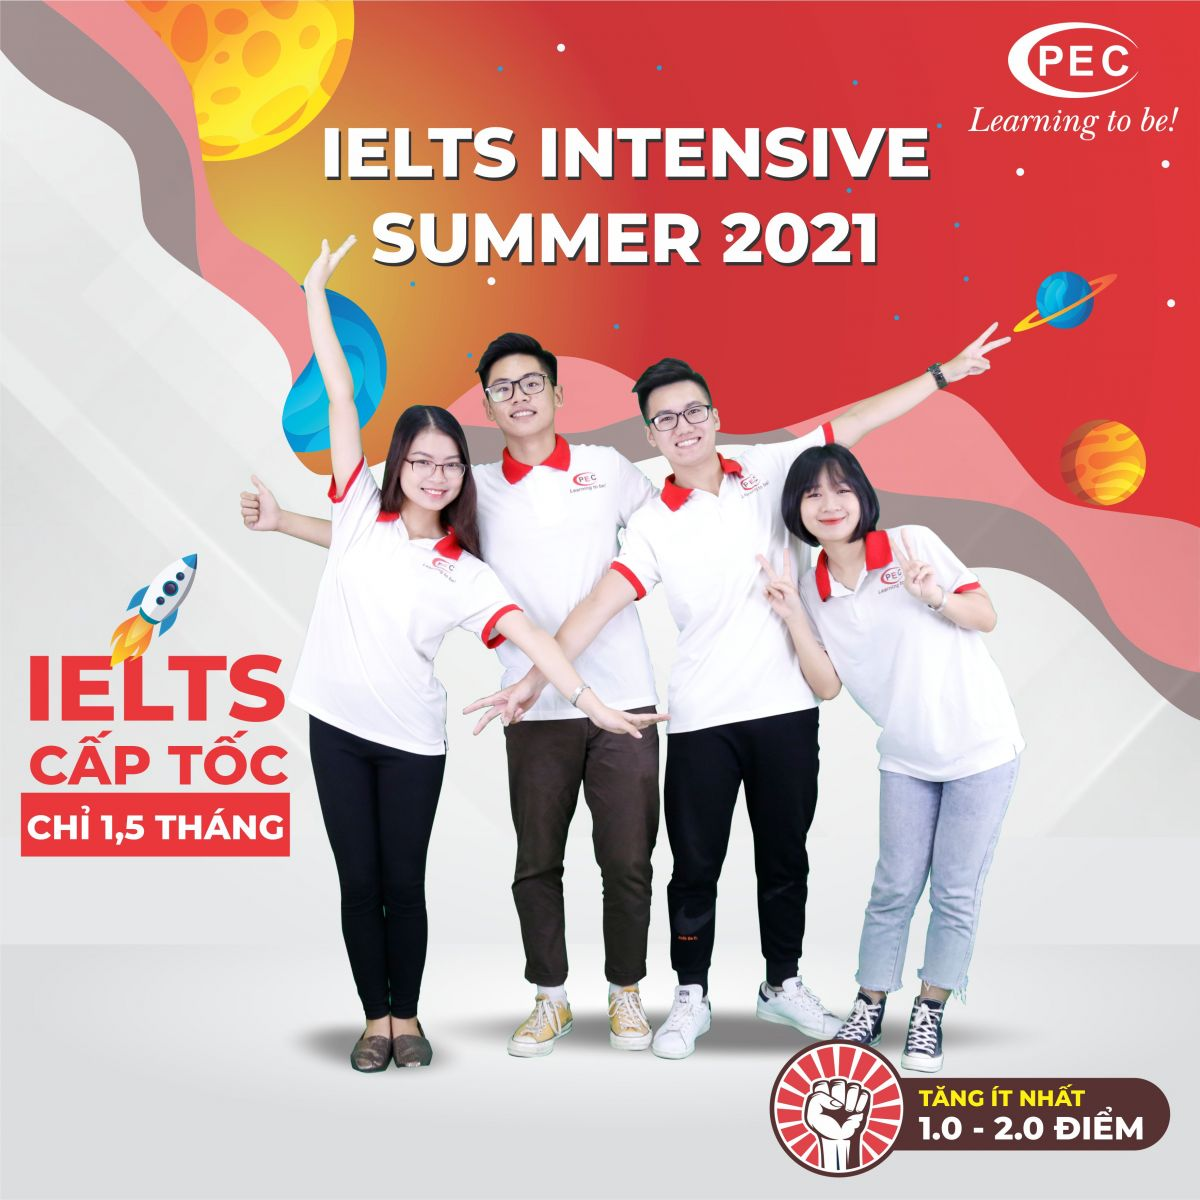 IELTS INTENSIVE SUMMER 2021 - IELTS CẤP TỐC